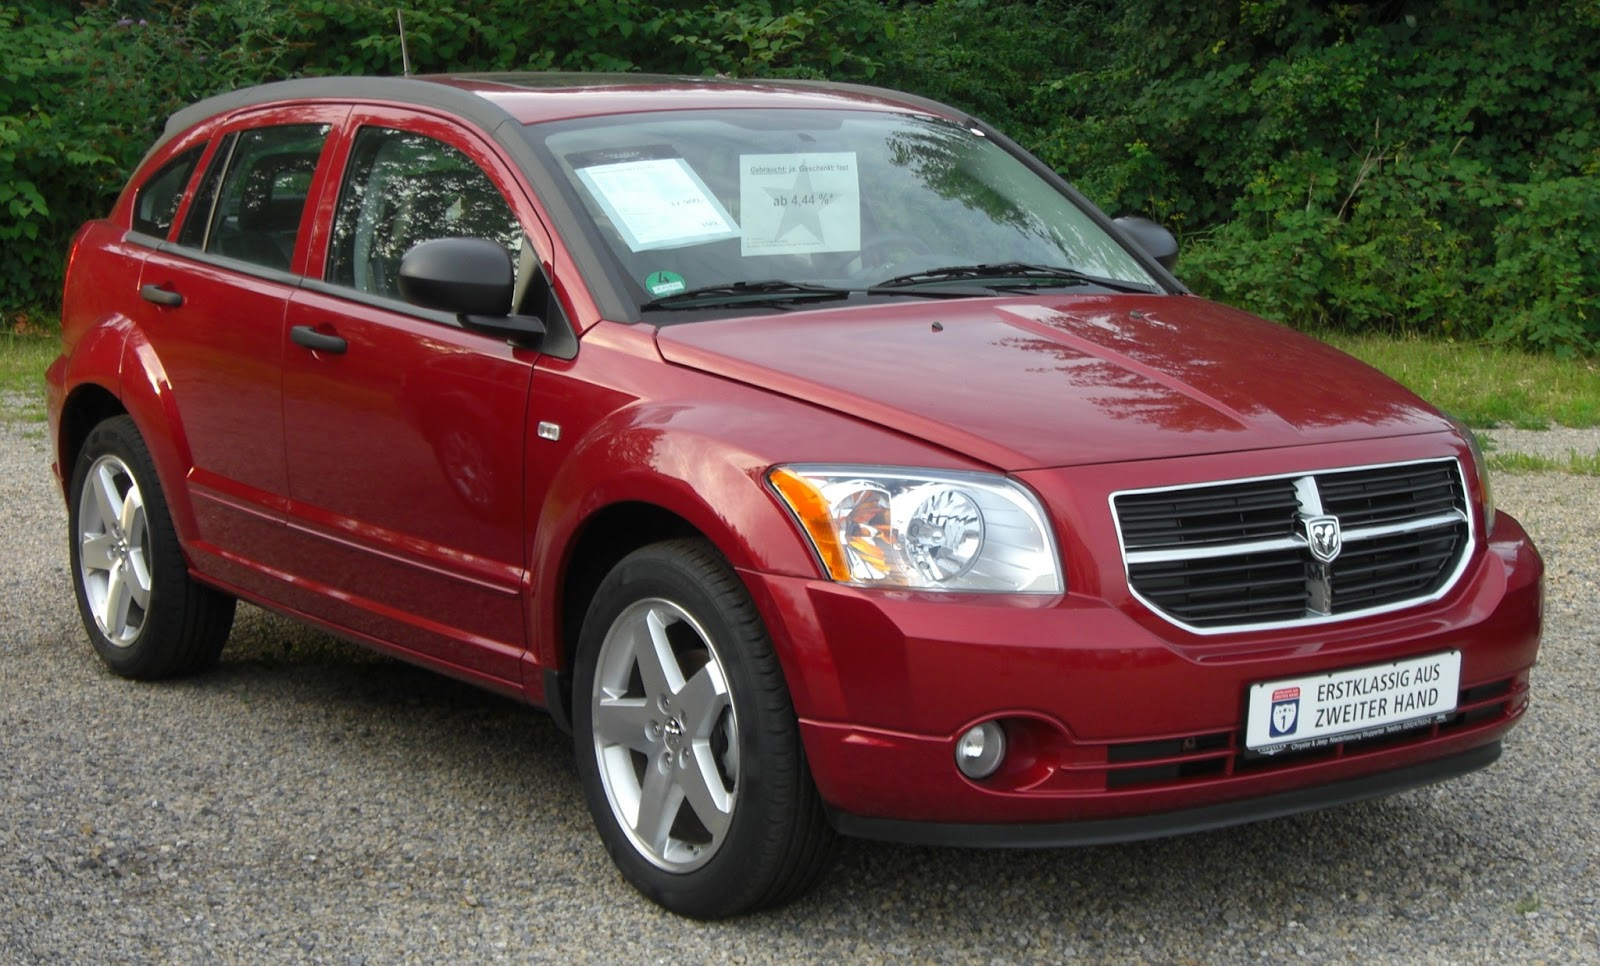 hd cars wallpapers dodge caliber. Black Bedroom Furniture Sets. Home Design Ideas